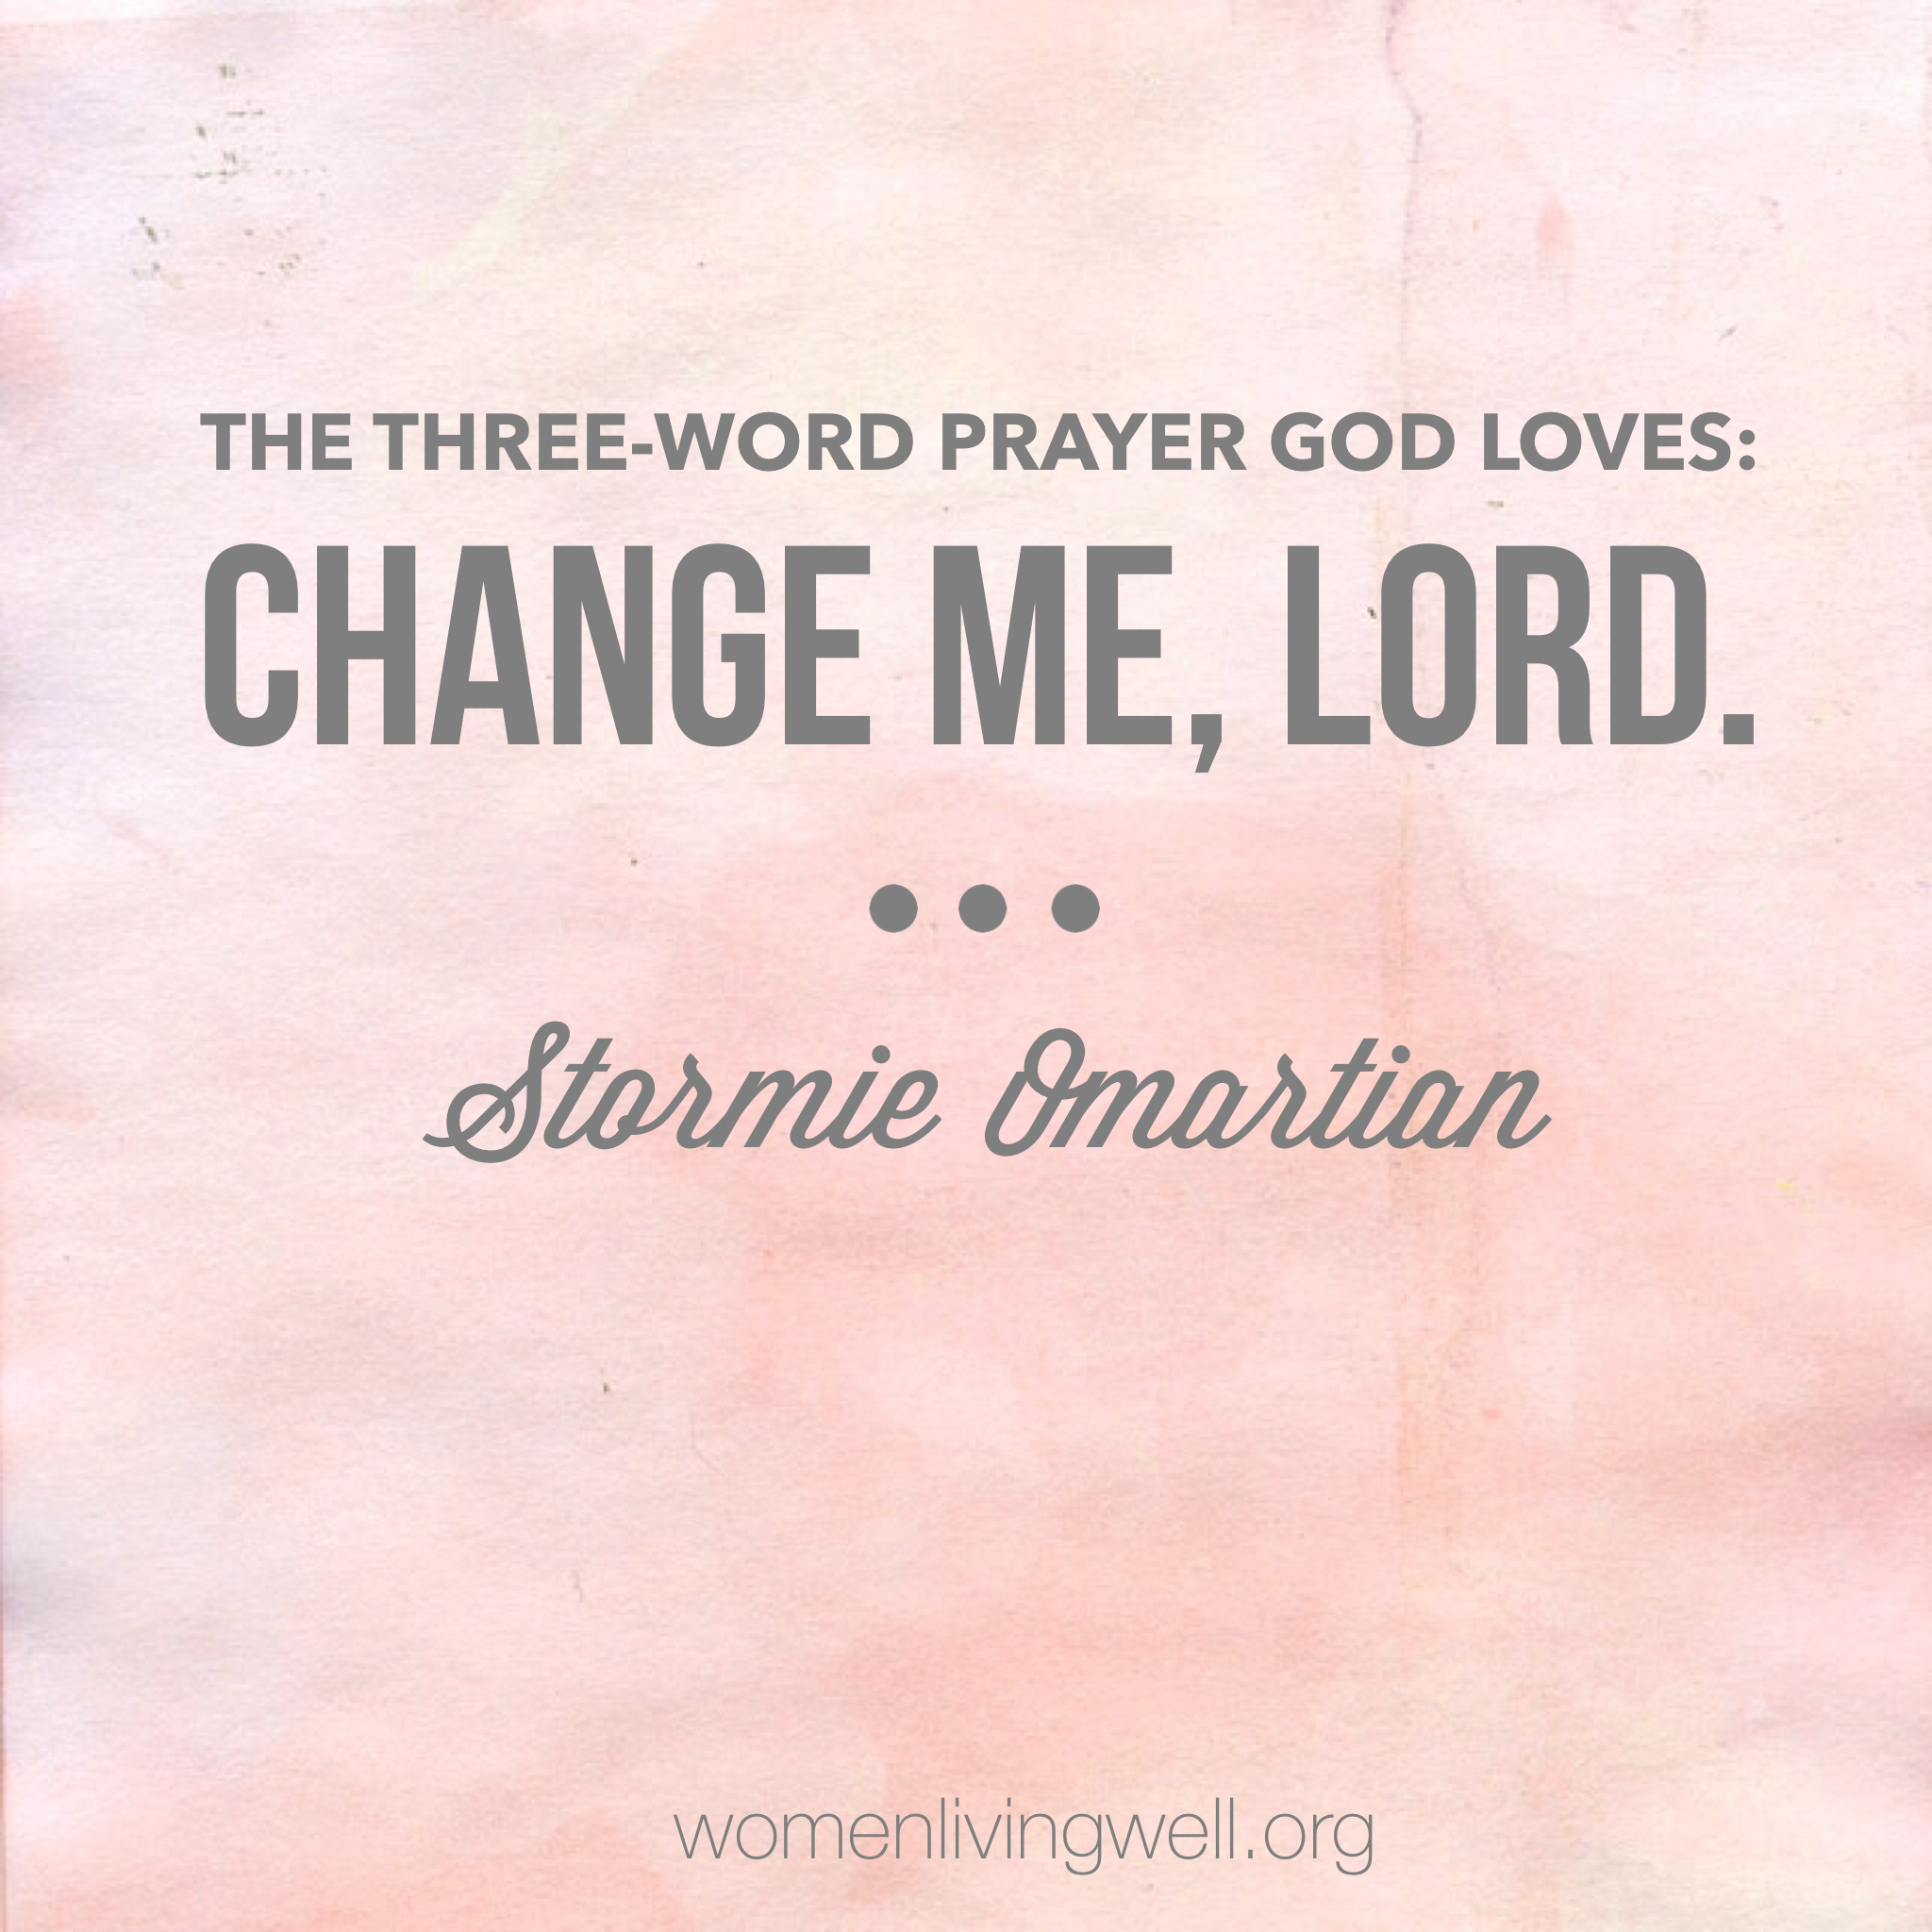 Emo Quotes About Suicide: The Three-word Prayer God Loves: Change Me, Lord